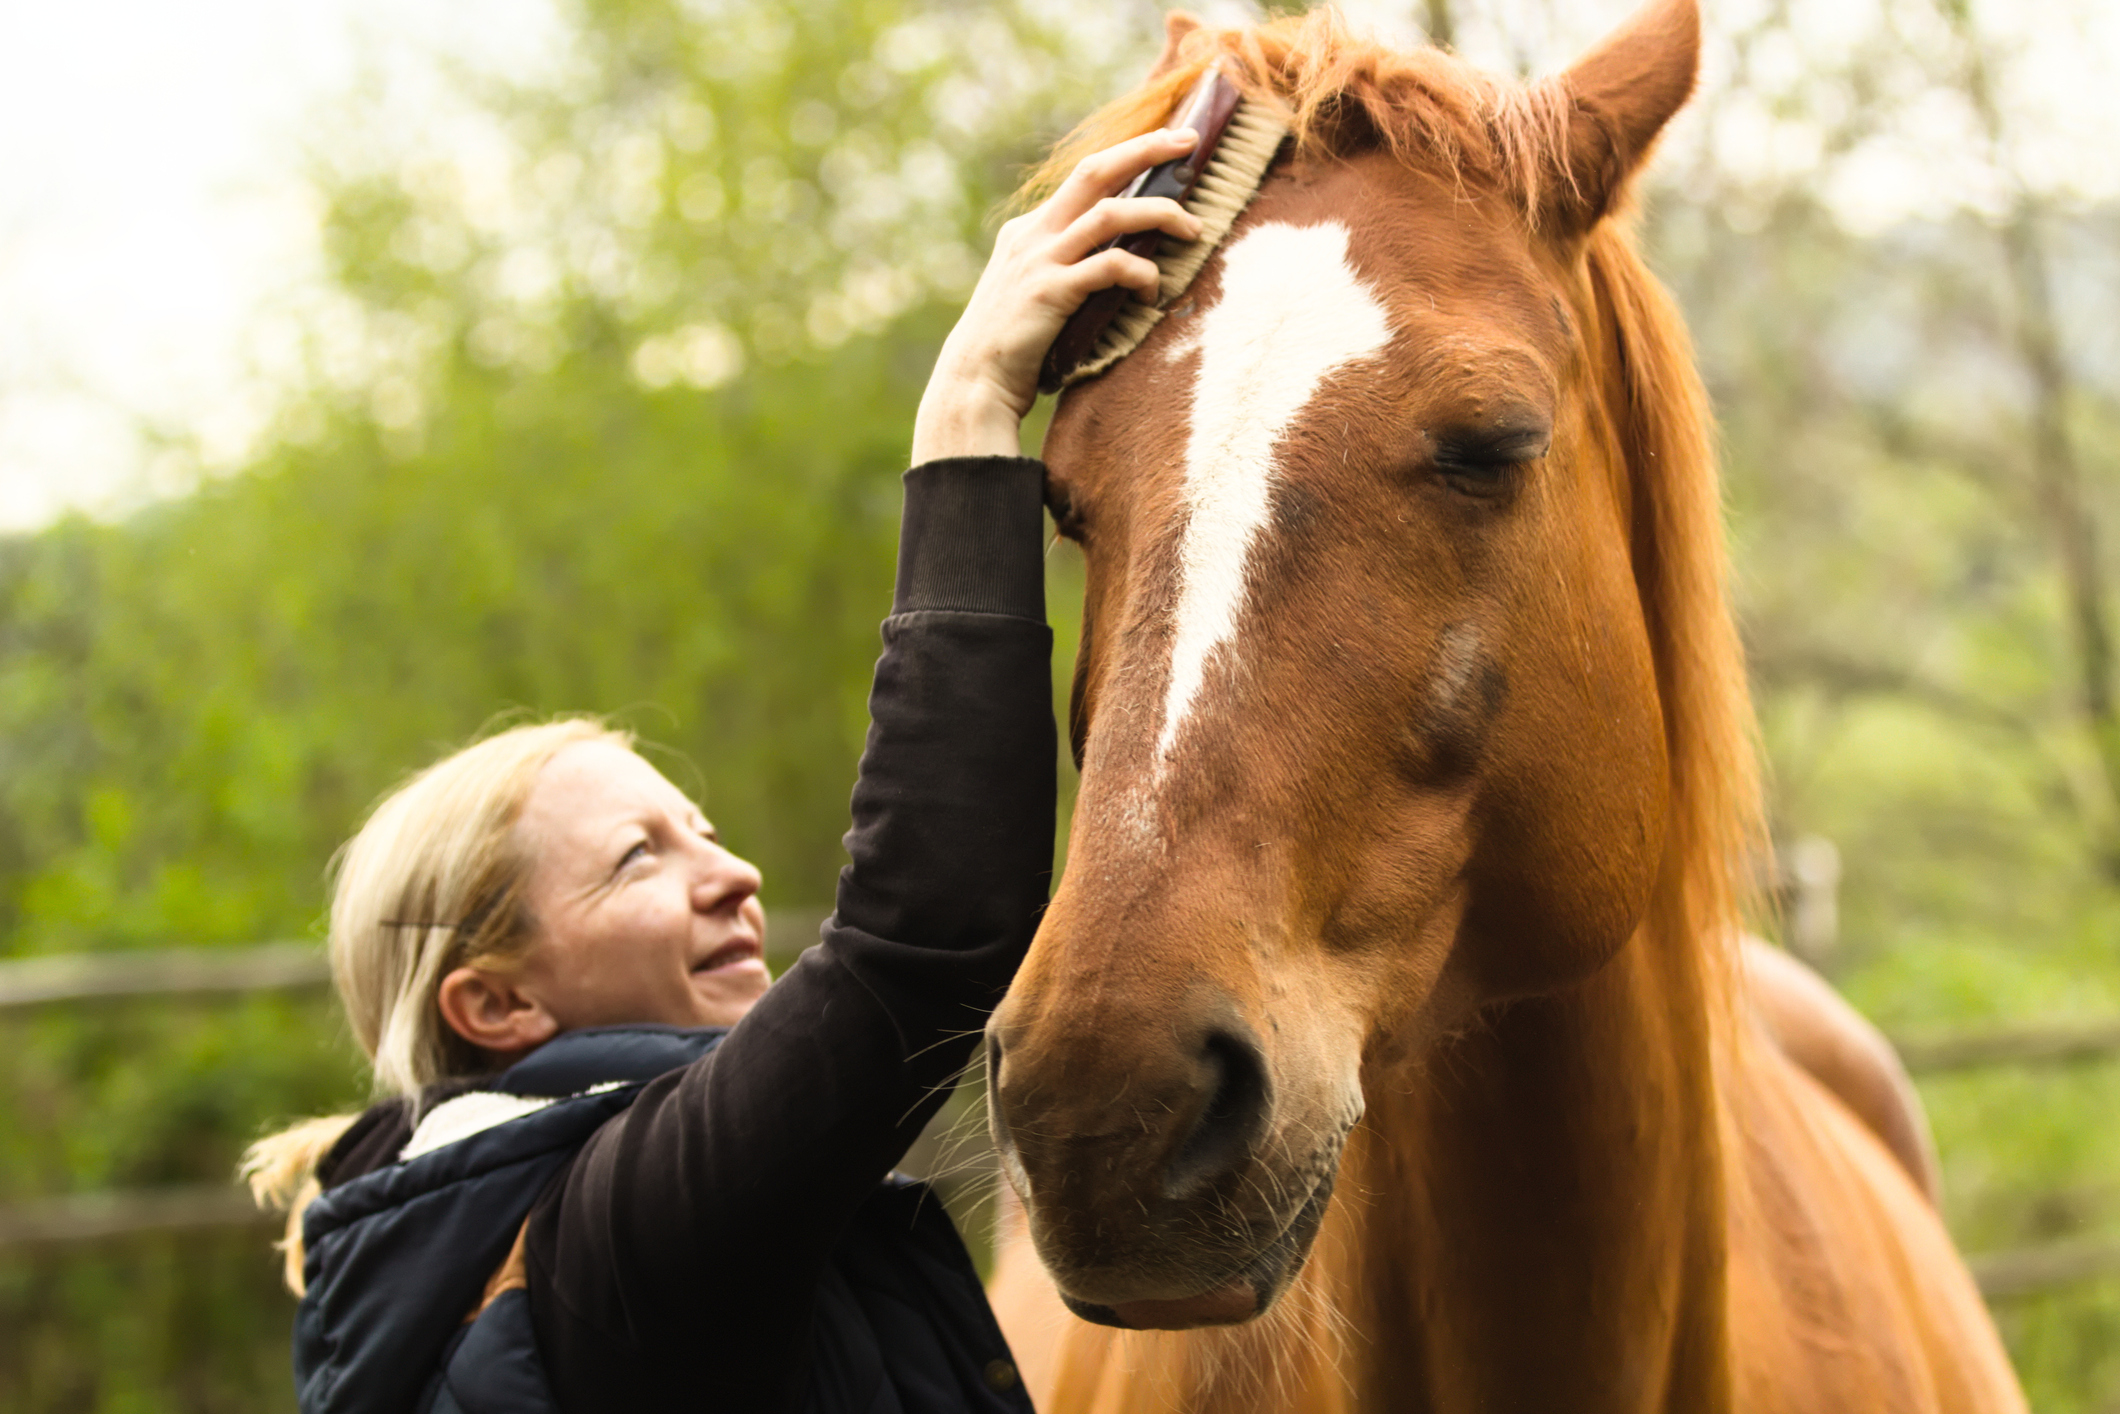 The Step-By-Step Guide to Grooming Your Horse